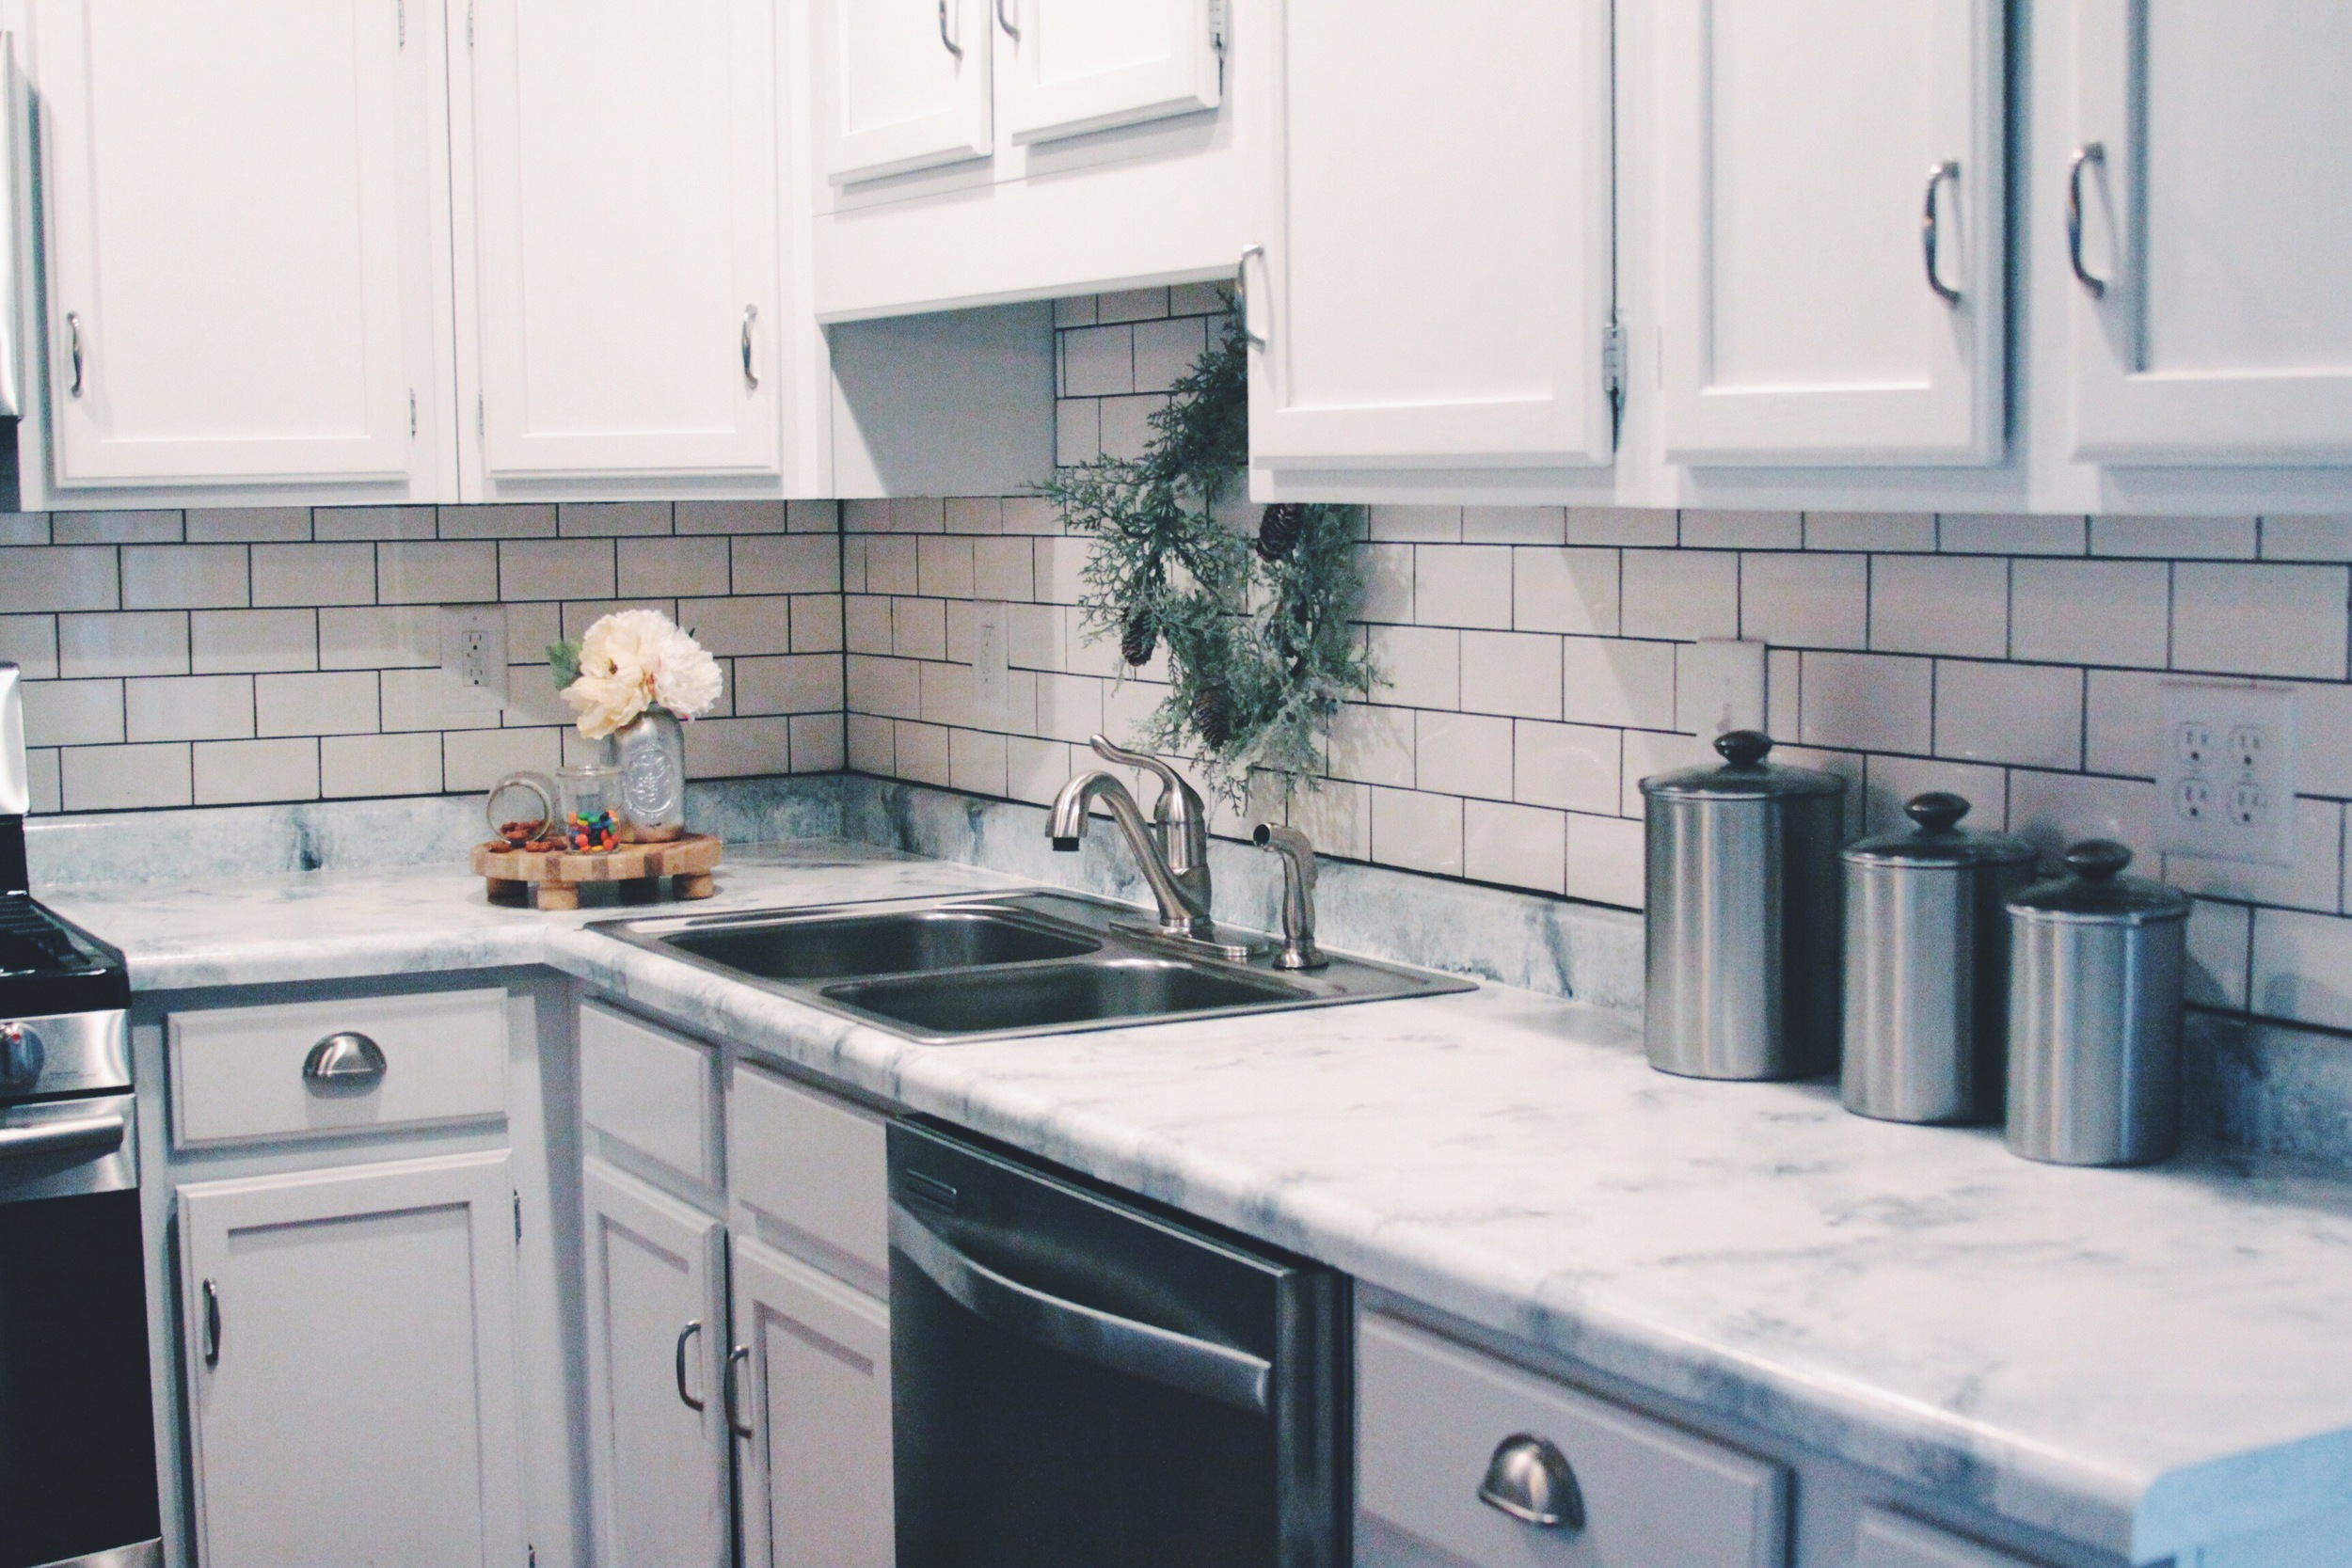 rent dishwasher types court countertops countertop suite rates sink group preston cheapest stonehill apartments toronto for